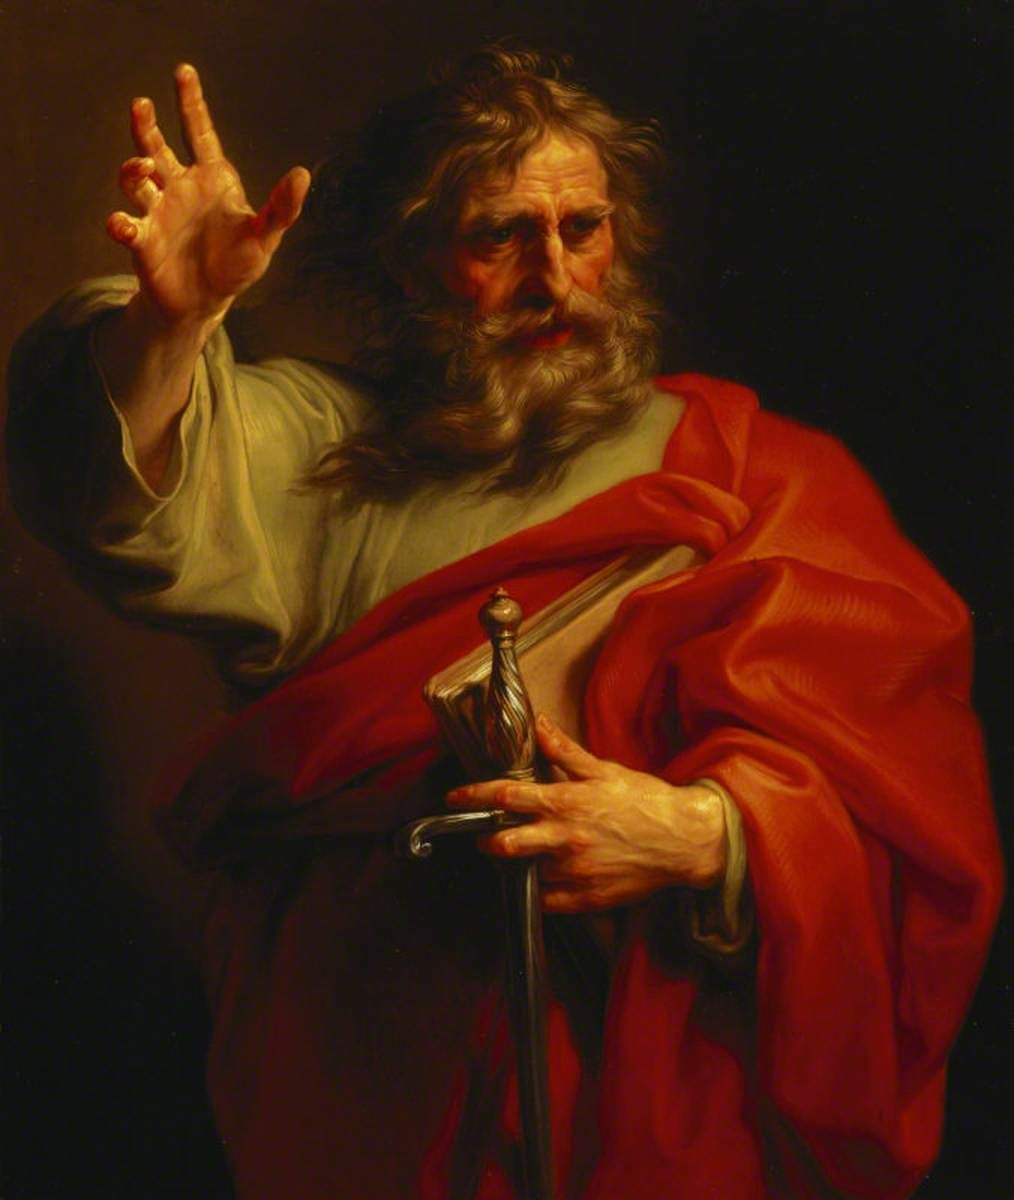 Saint Paul by Pompeo Batoni (18th Century) - Public Domain Catholic Painting